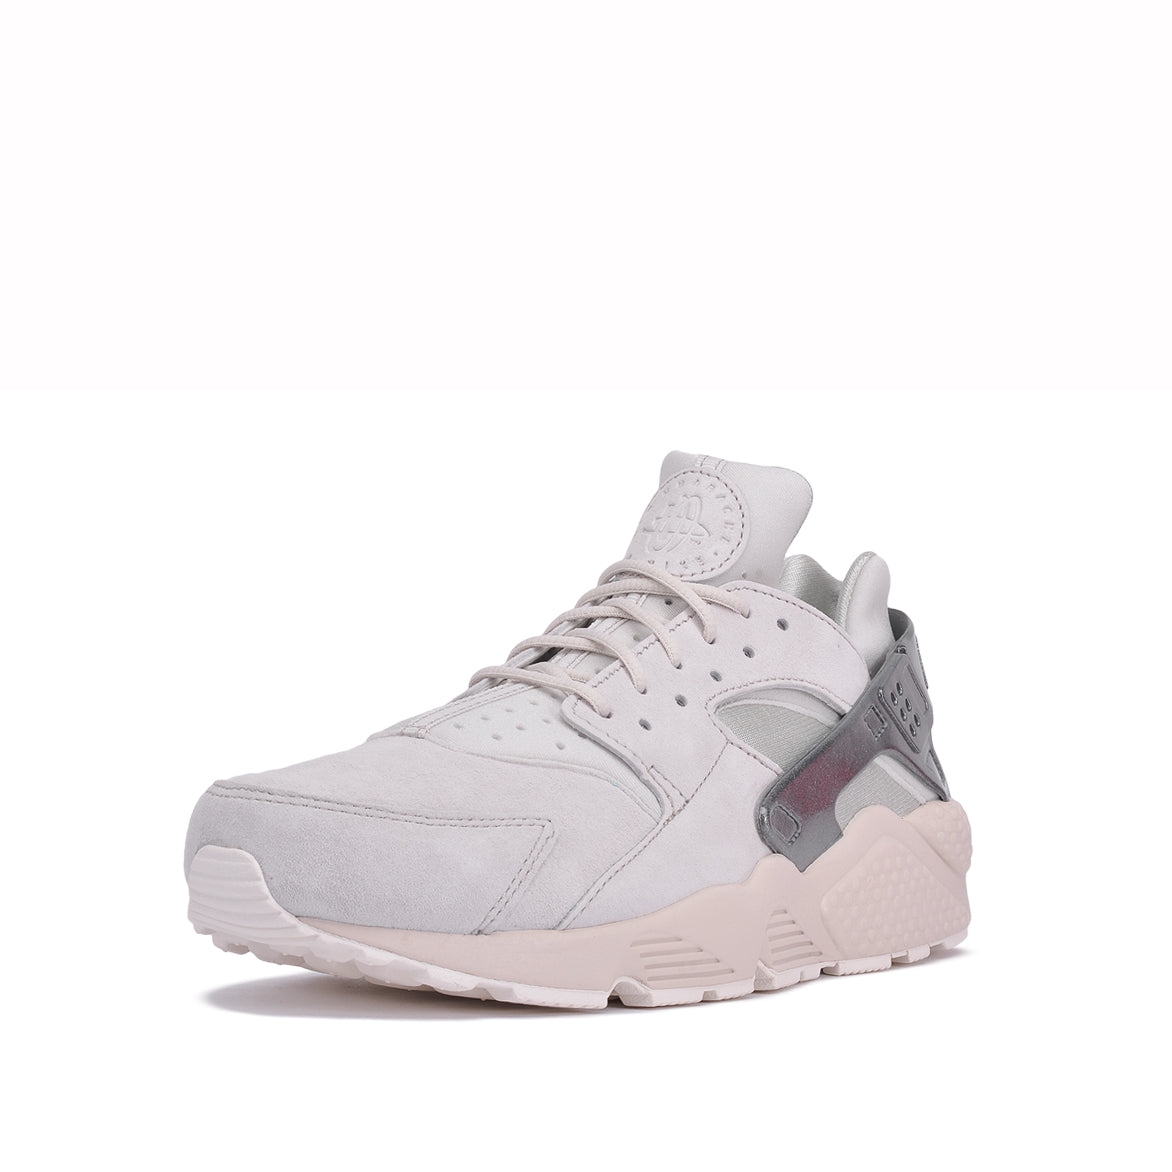 AIR HUARACHE RUN PRM - LIGHT BONE / METALLIC COOL GREY